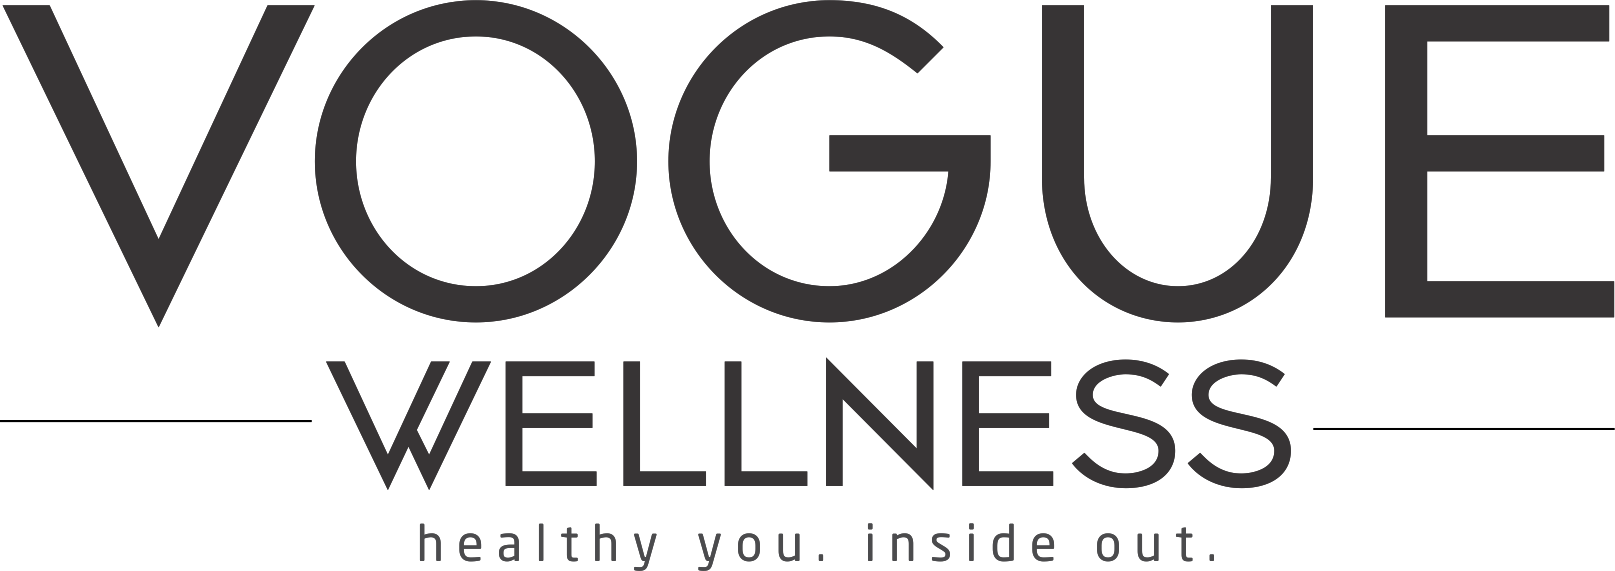 Vogue Wellness